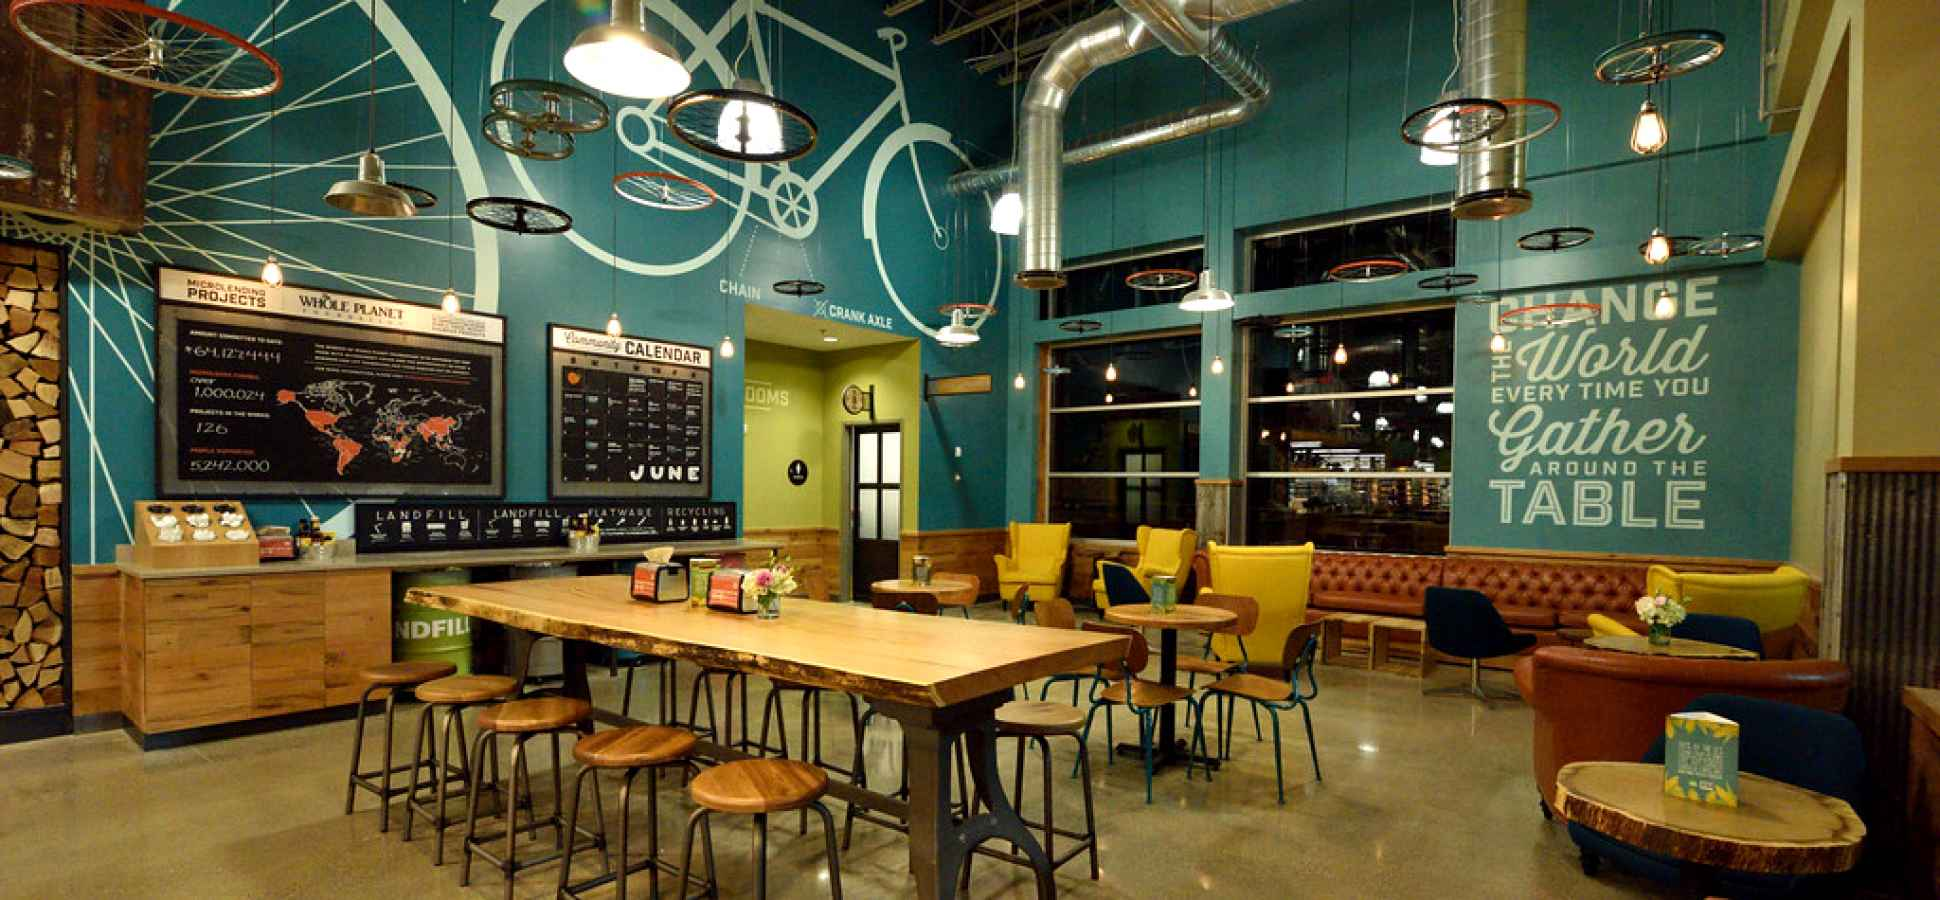 3 Ways Whole Foods Is Using Design to Appeal to Millennials